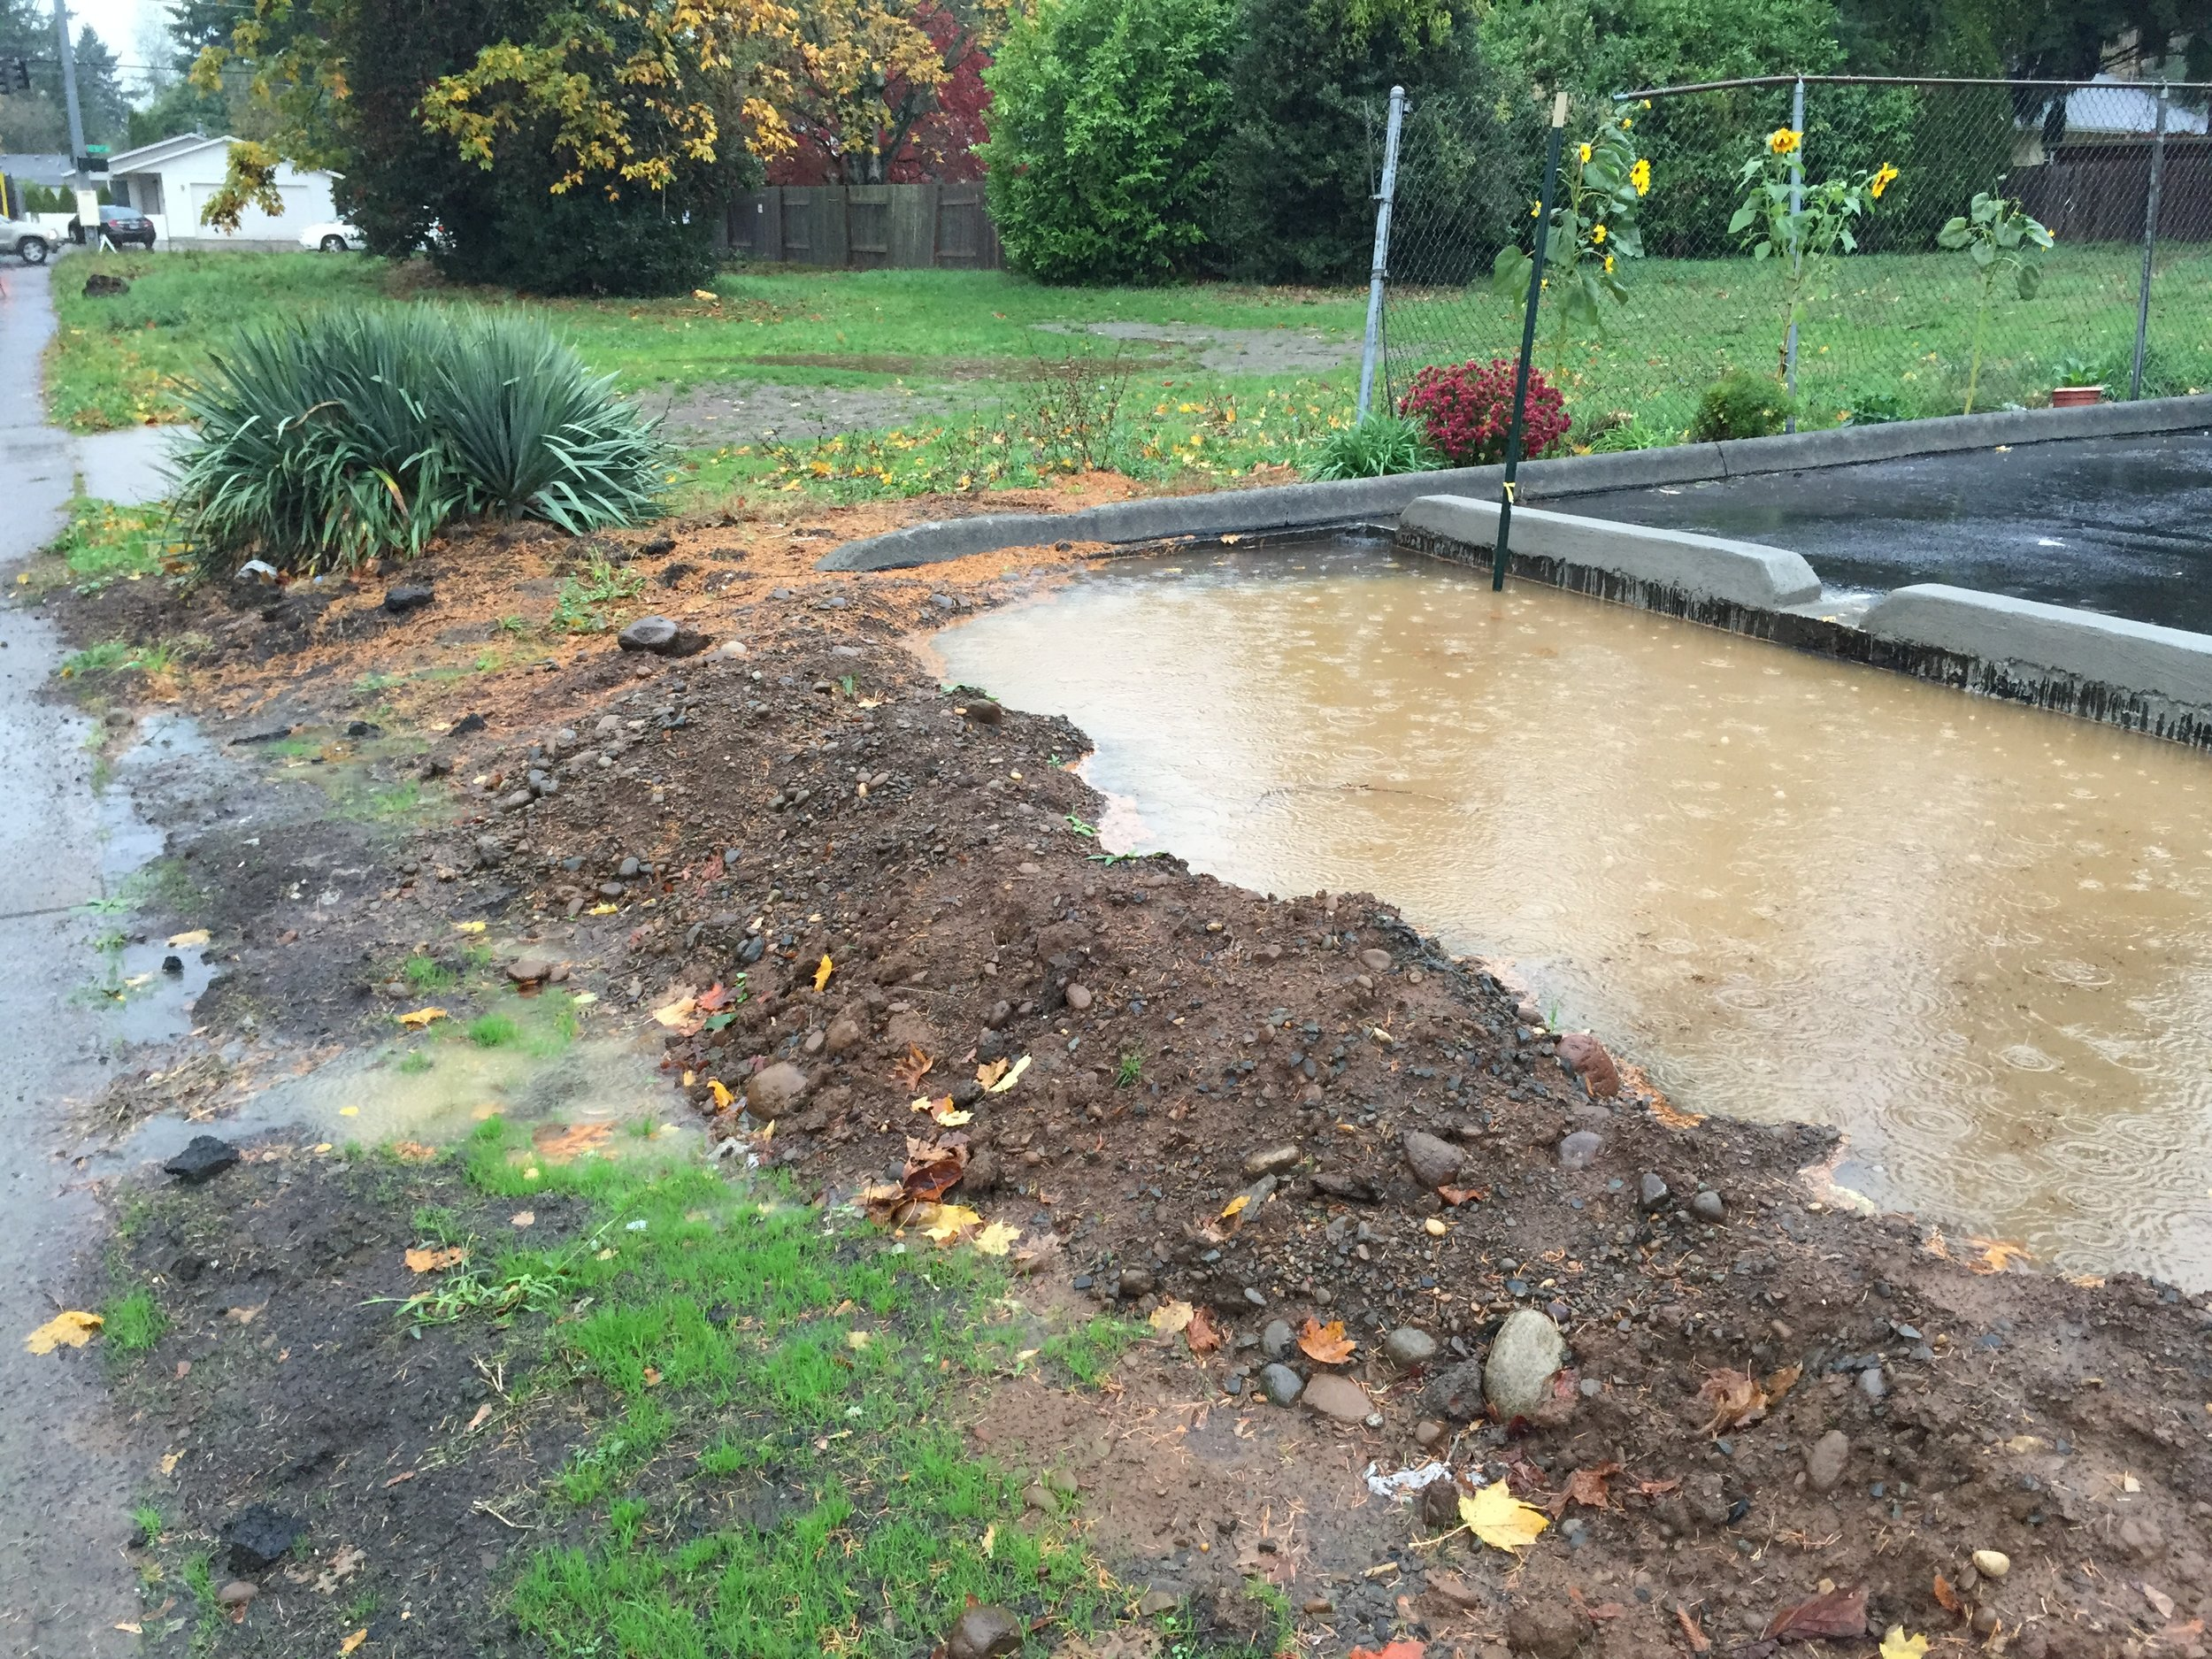 Site assessment and heavy rains show filtration issues caused by years of compaction. .